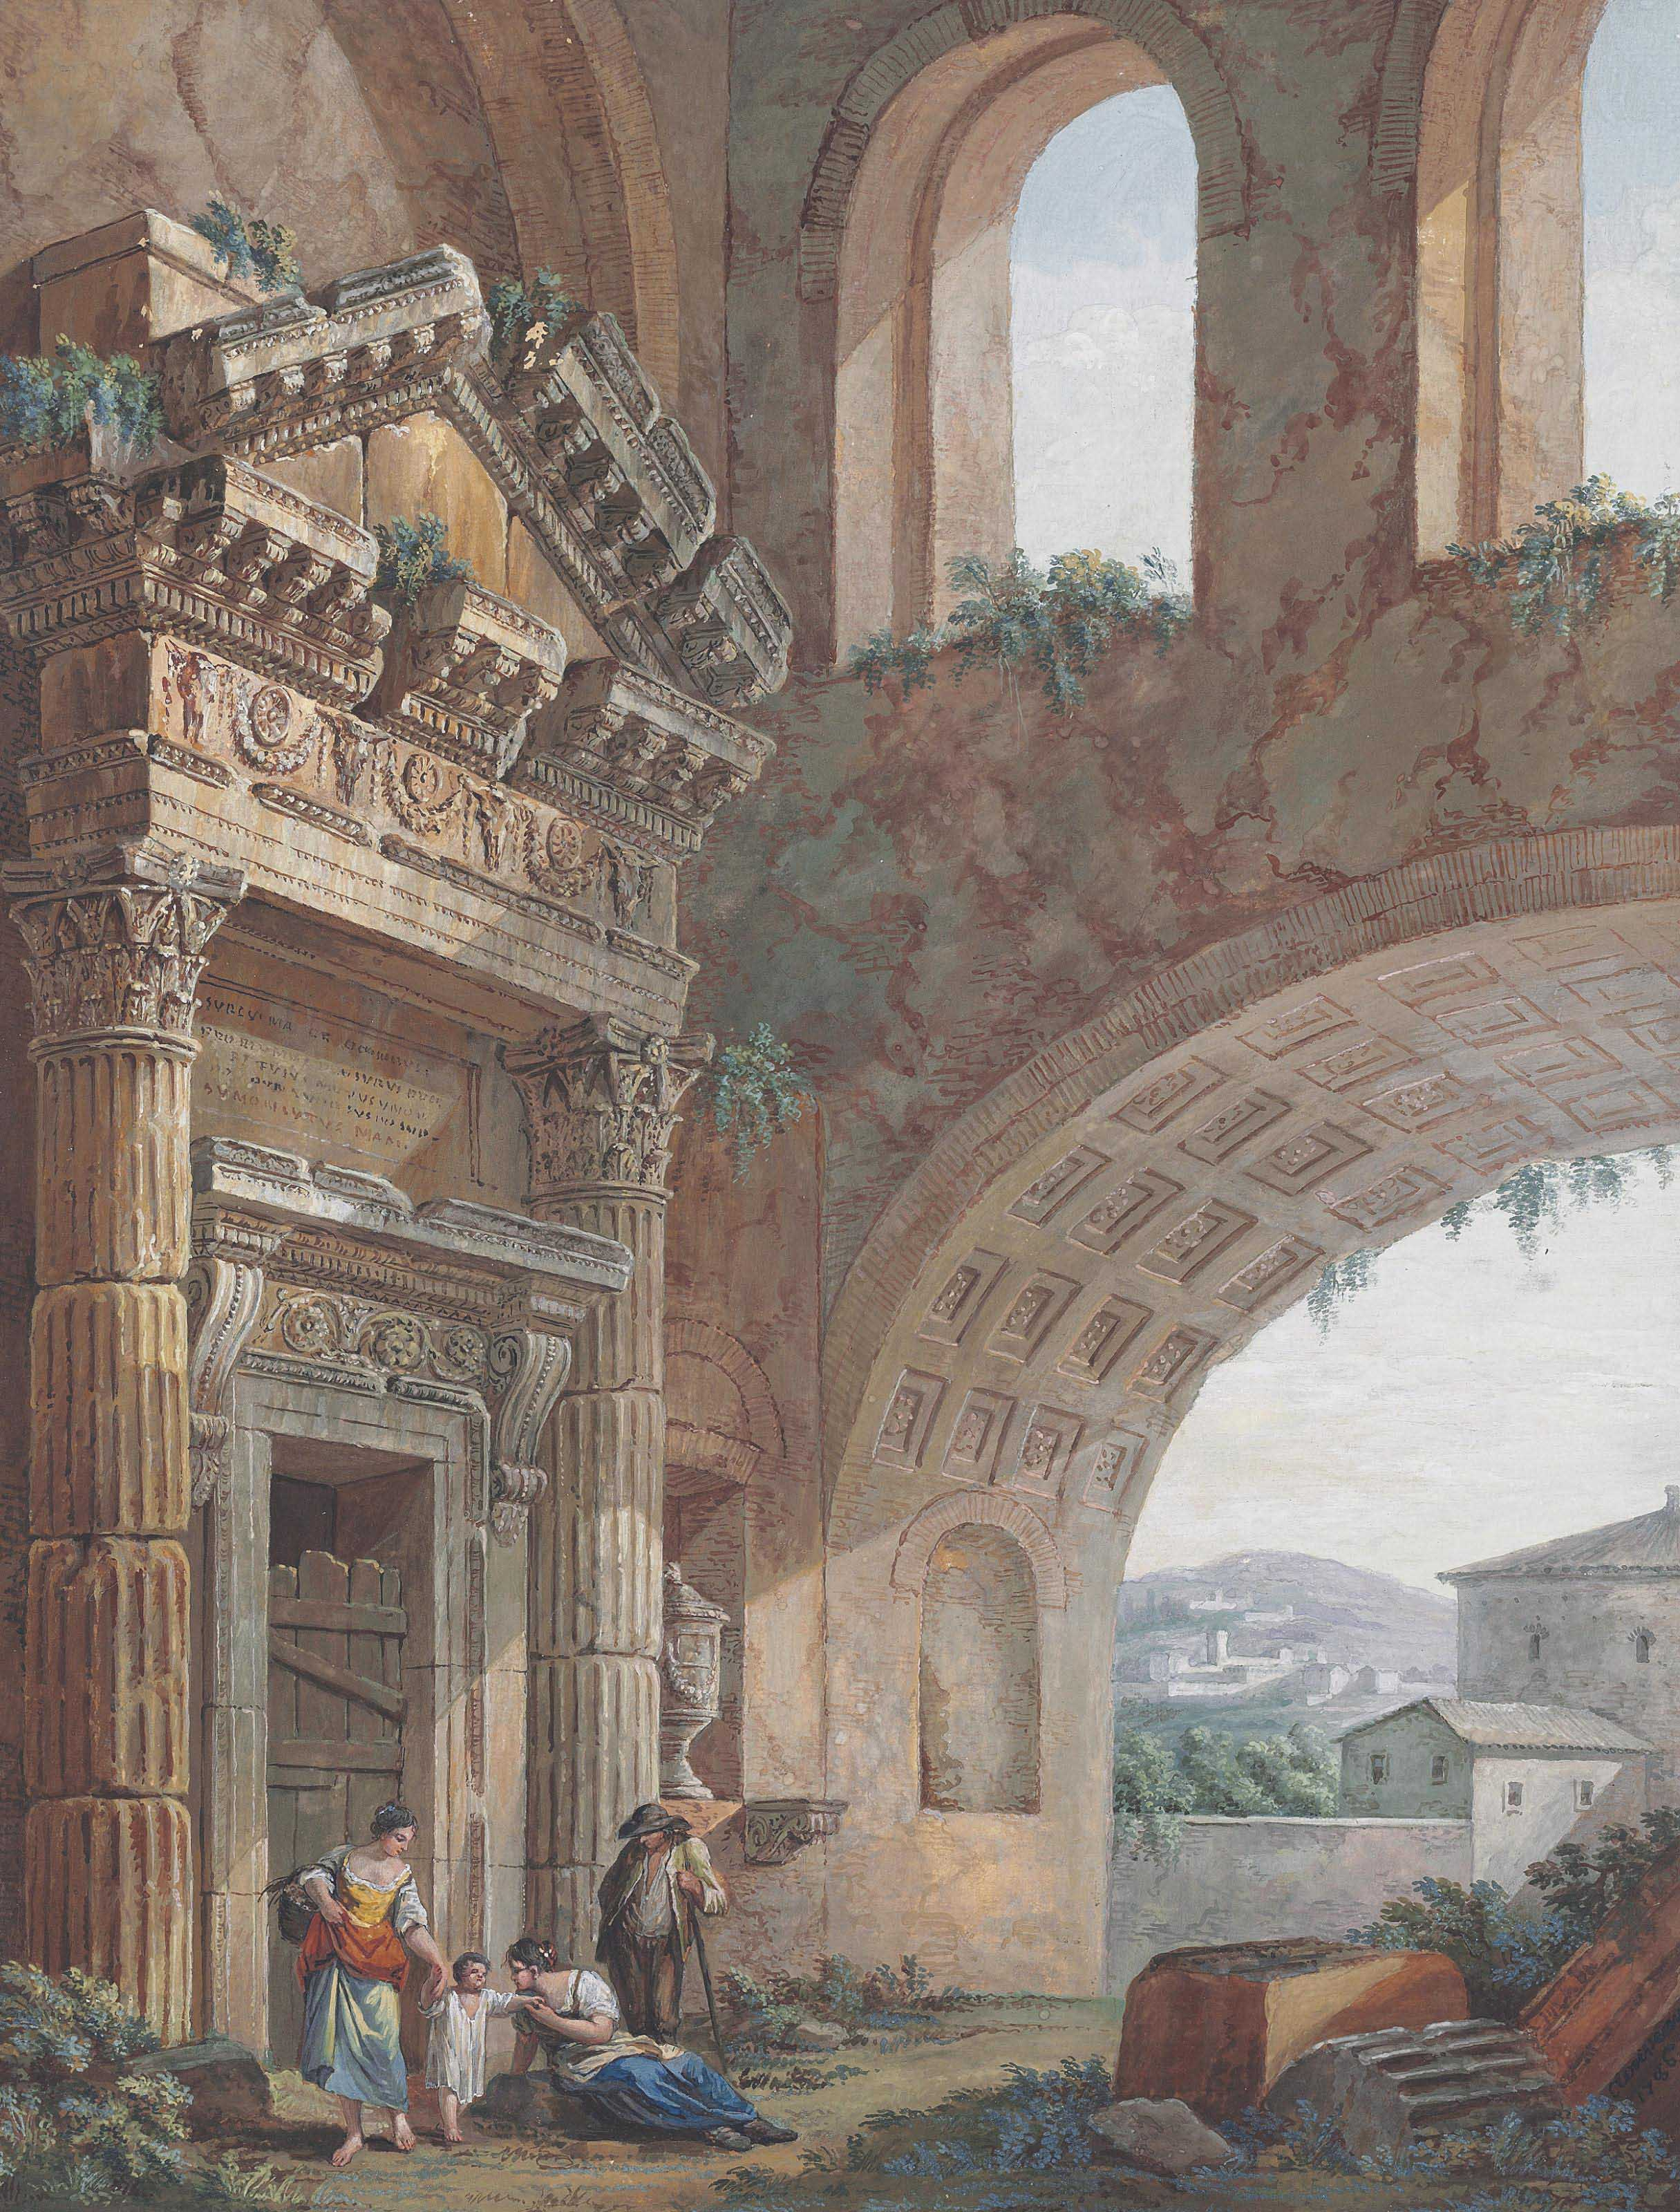 https://www.christies.com/img/LotImages/2016/CKS/2016_CKS_13731_0053_000(charles-louis_clerisseau_a_classical_capriccio_with_figures_by_a_great).jpg